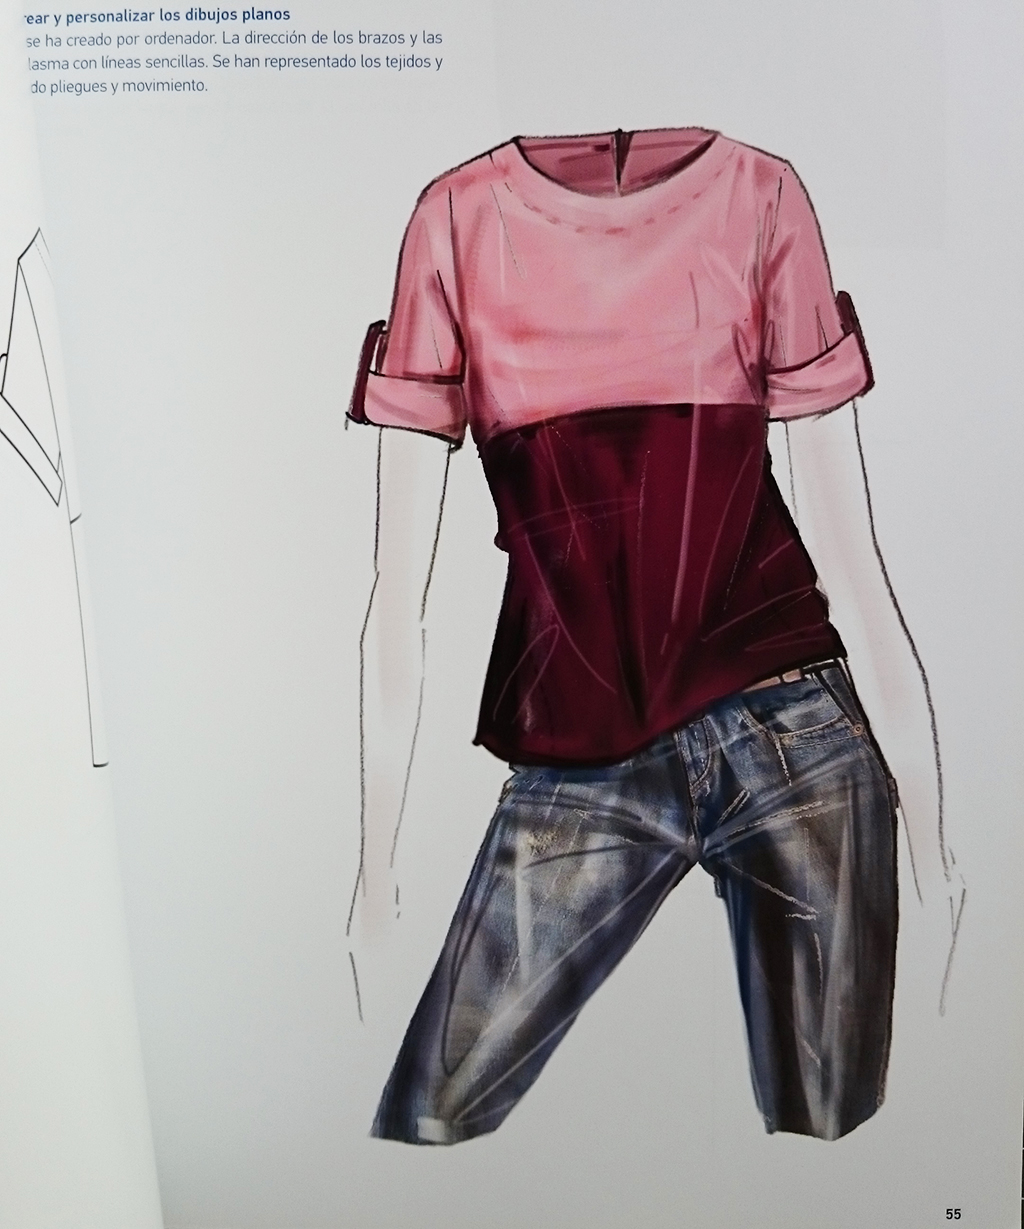 Technical-Drawing-Look-Inside-03